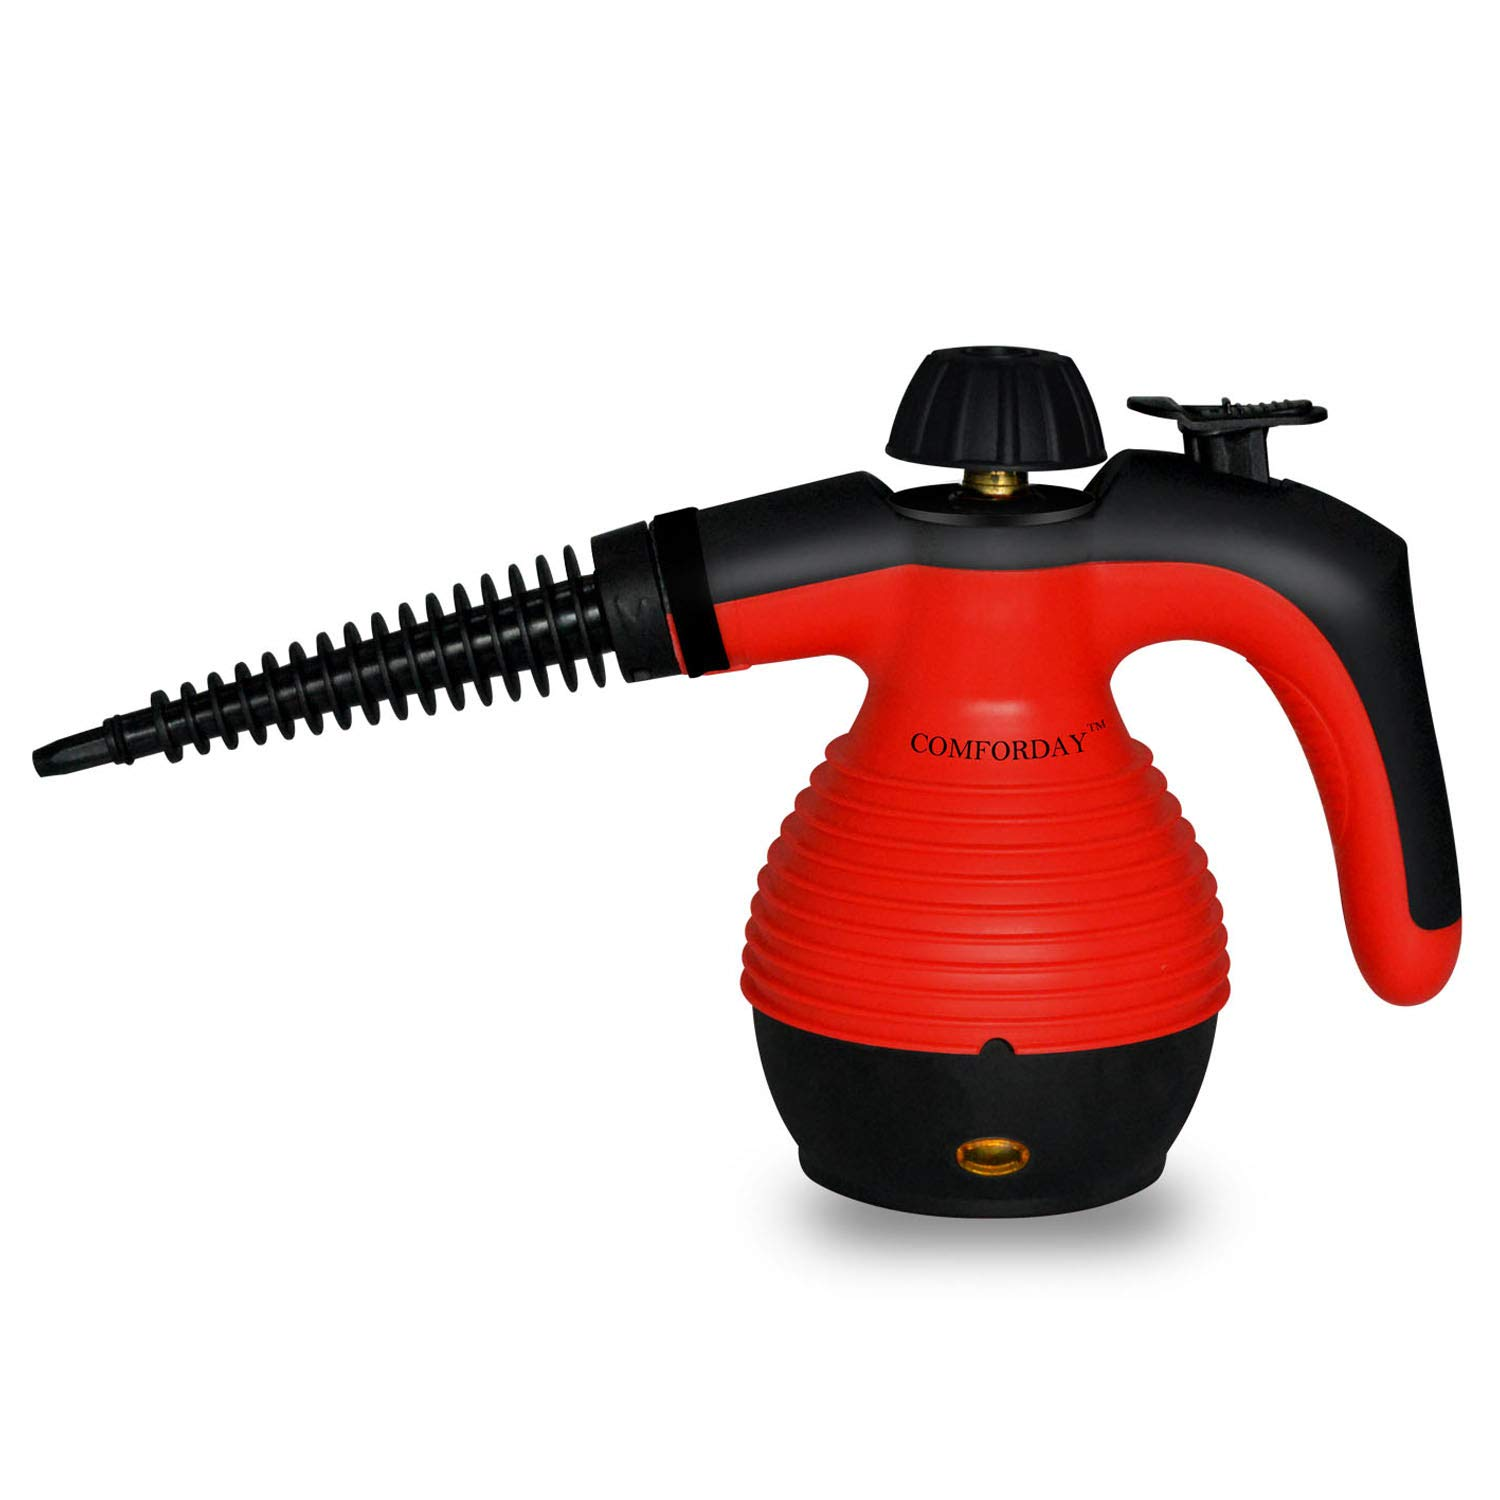 ALL IN ONE Comforday Handheld Steam Cleaner, HIGH PRESSURE Chemical Free Steamer for Bathroom, Kitchen, Surfaces, Floor, Carpet, Grout and more, BEST GERM KILLER and SANITIZER - Red